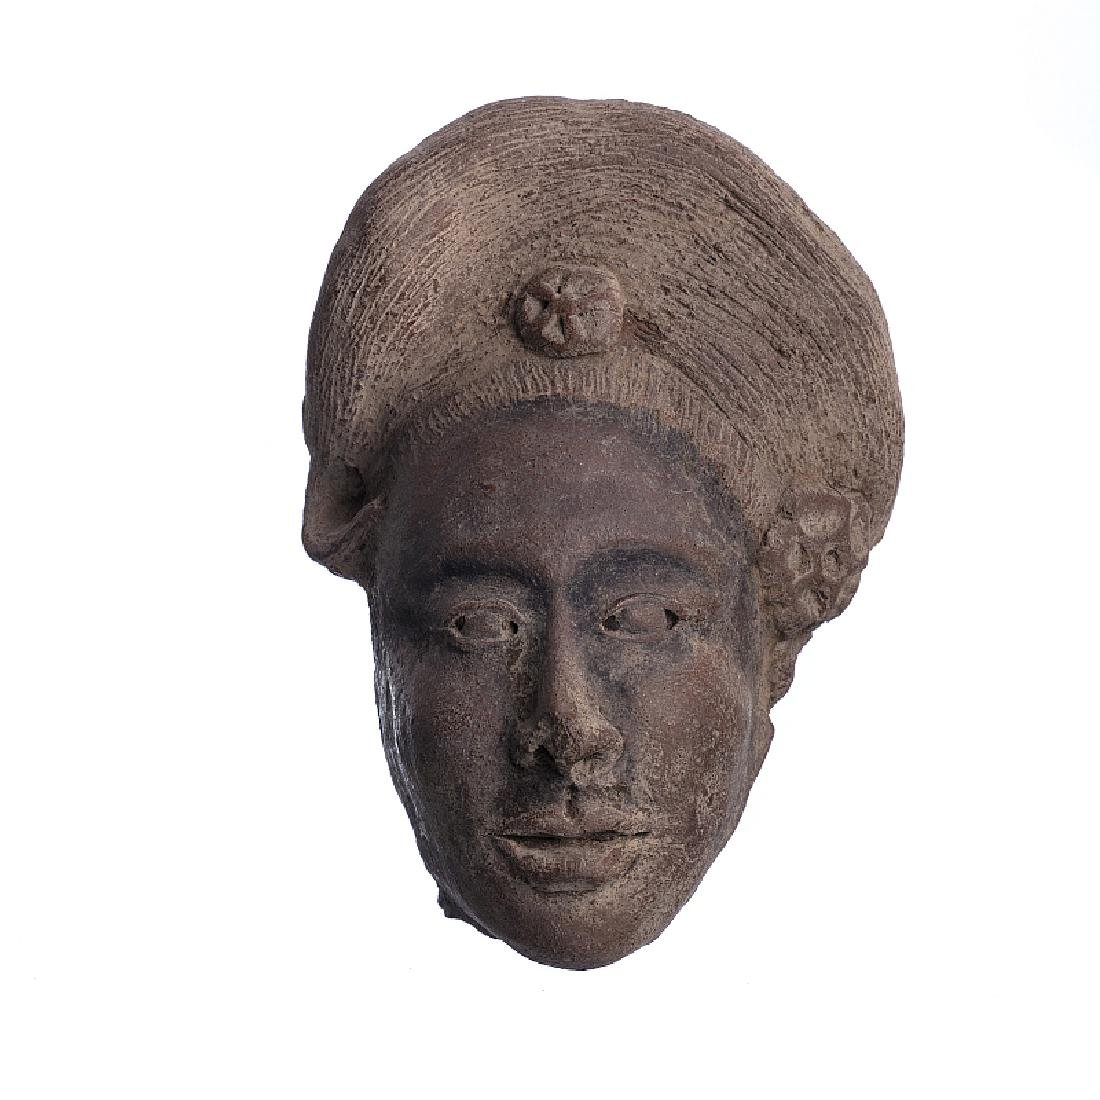 MAJAPAHIT - Male terracotta head